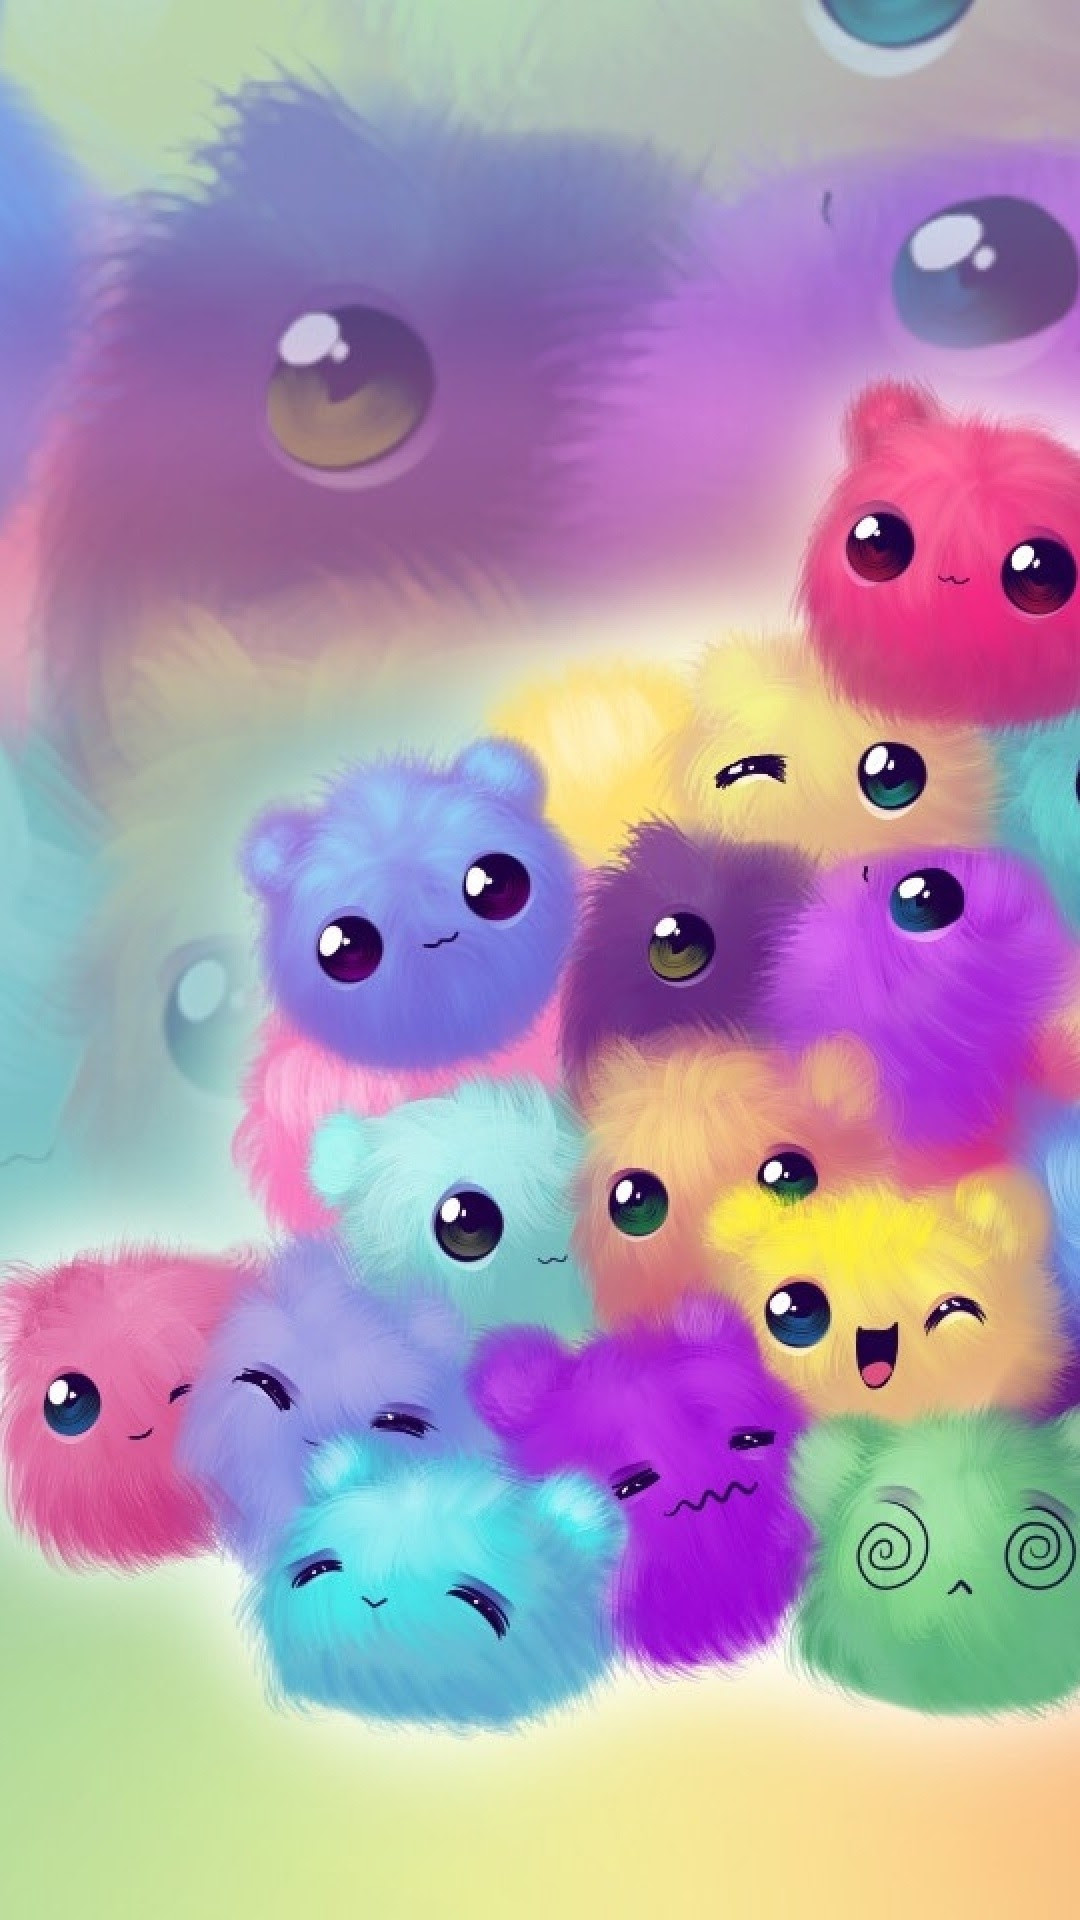 Cute Wallpapers for Phones 69+ images